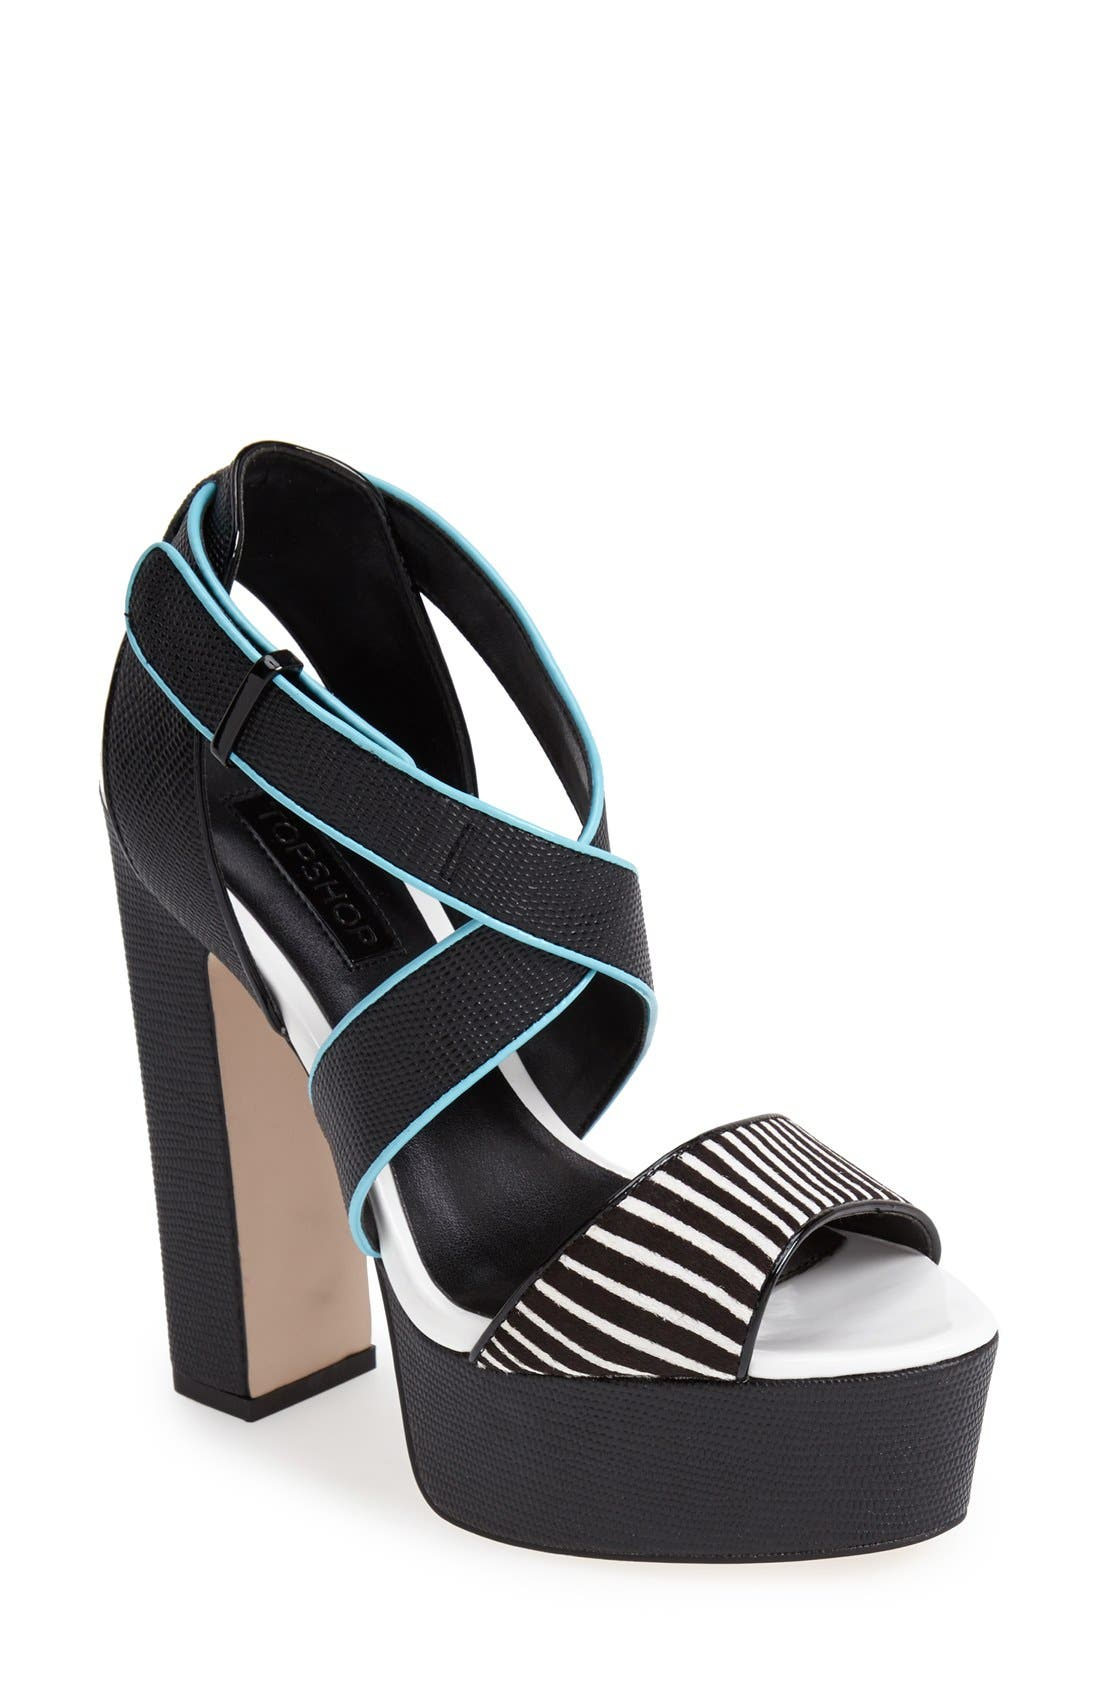 Alternate Image 1 Selected - Topshop 'Laine' Platform Sandal (Women)